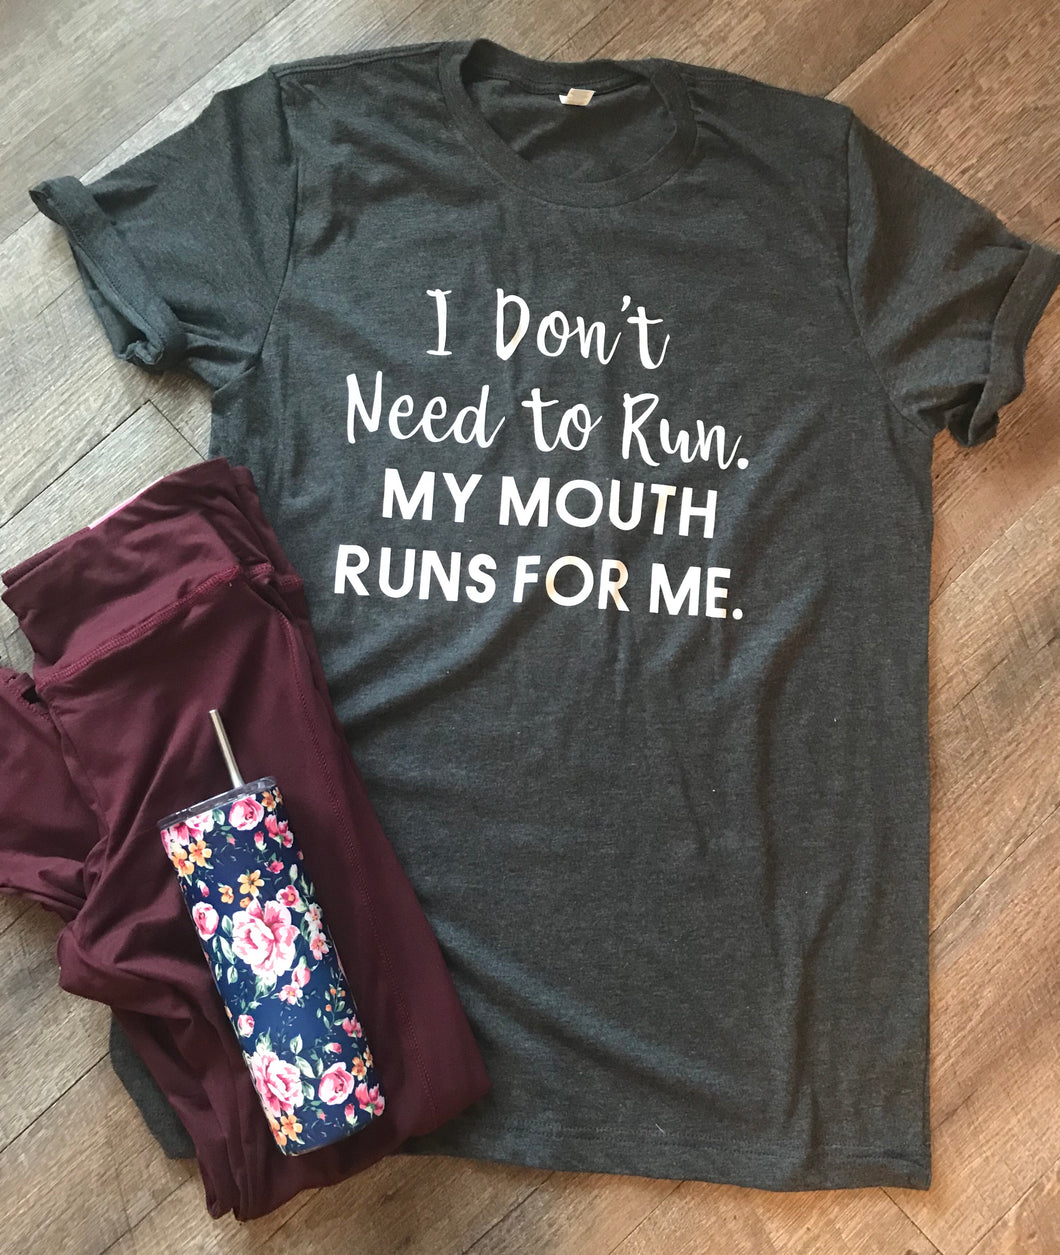 I don't need to run my mouth runs for me funny graphic tee - Mavictoria Designs Hot Press Express